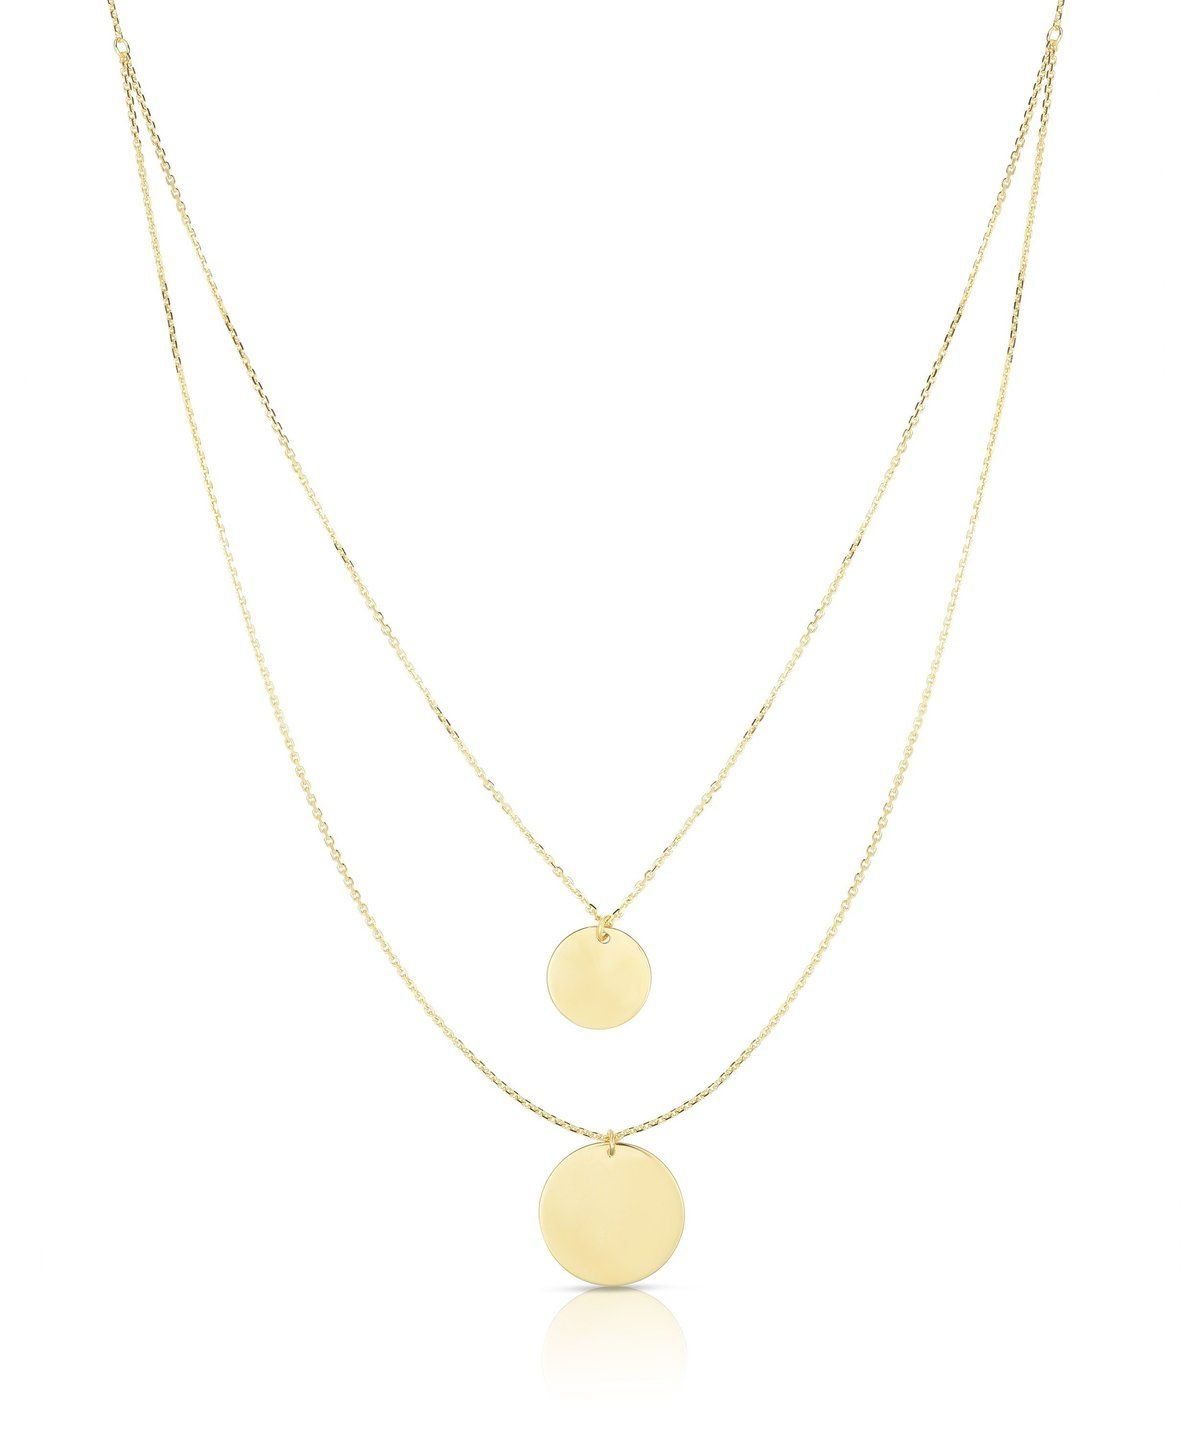 14K Yellow Gold Eagle Pendant on an Adjustable 14K Yellow Gold Chain Necklace